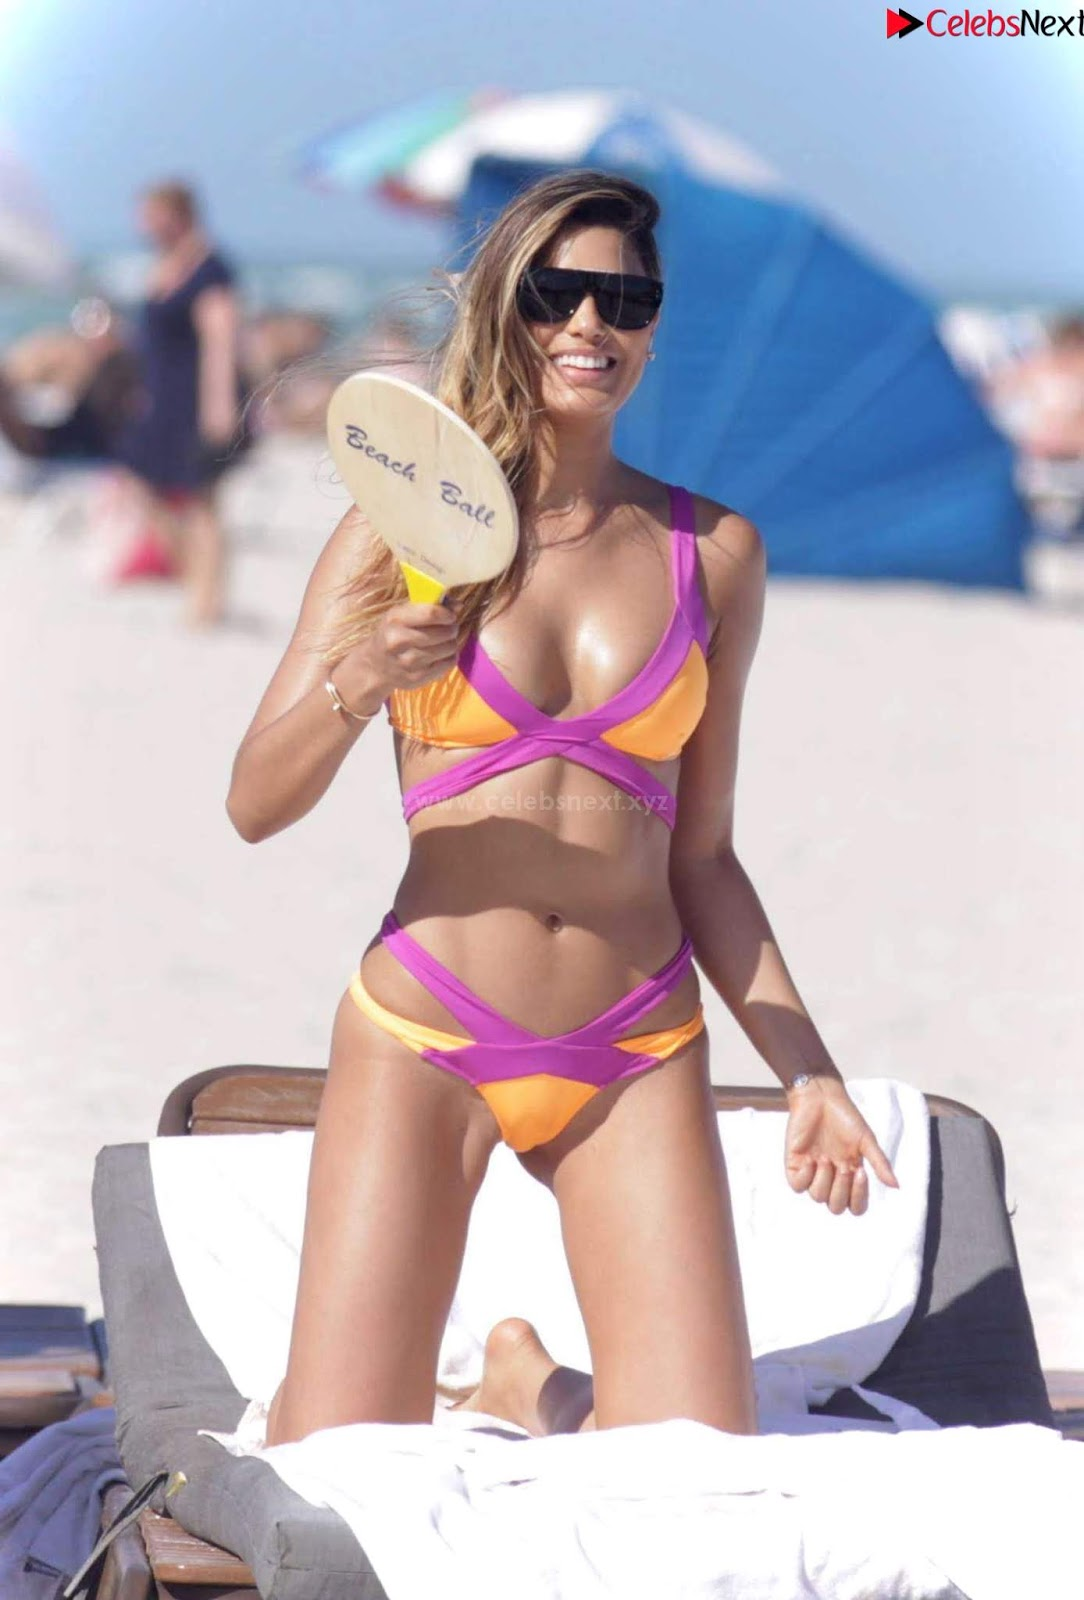 Ariadna Gutierrez in Sexy Pink Bikini SEXY ASS WOW BOOTY IN SWIMSUIT BIKINI CELEBRITYBOOTY.CO Exclusive Celebrity Pics